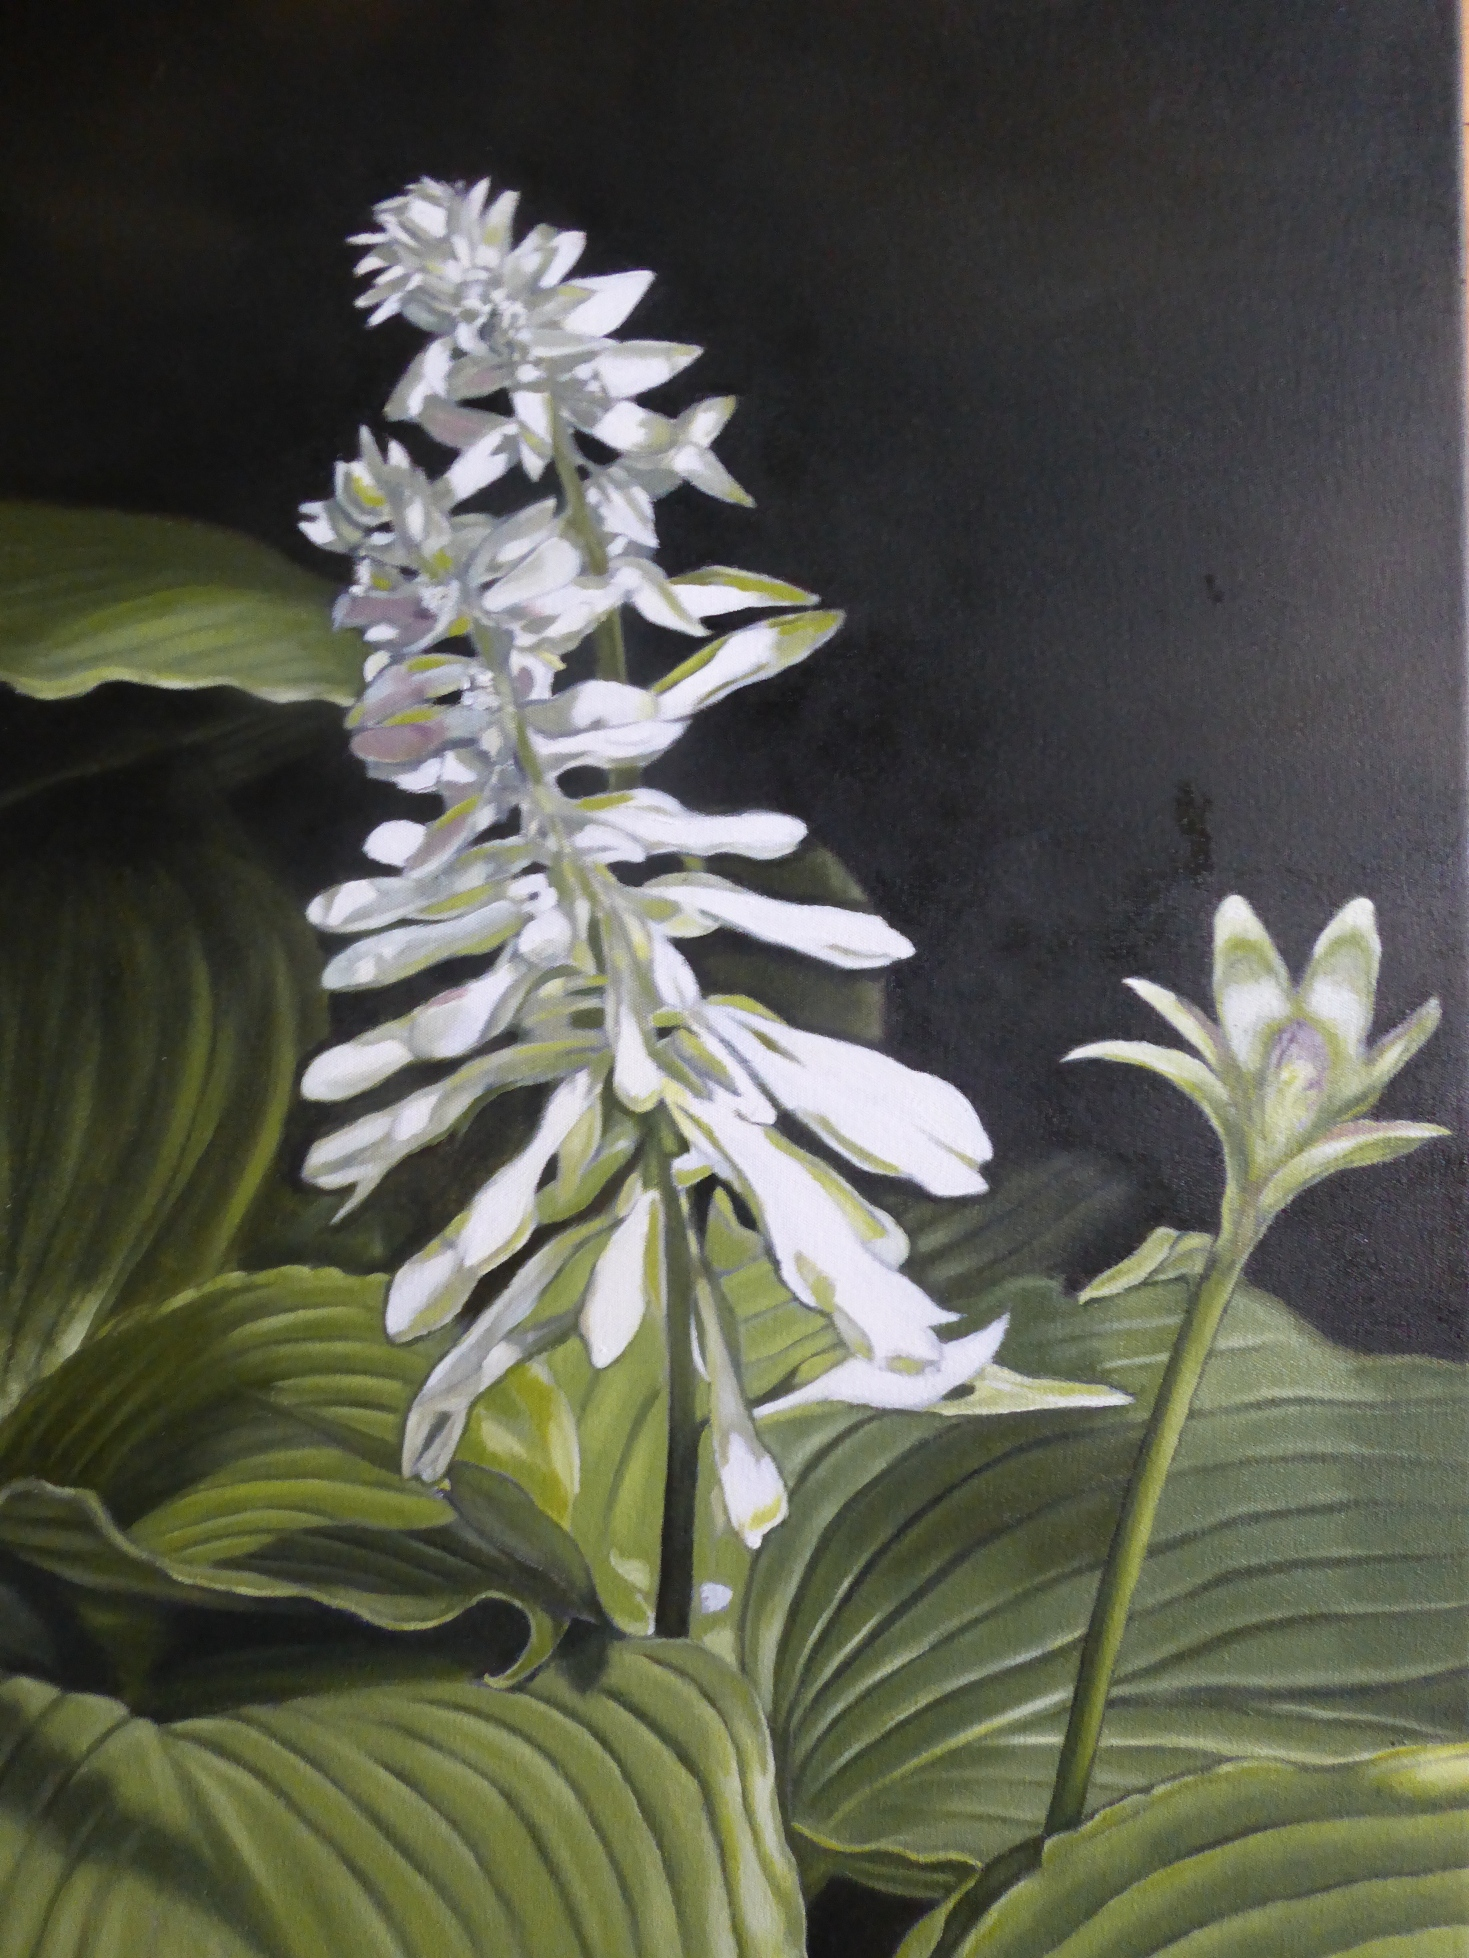 'Hosta I' by artist Ellisa Haldenby